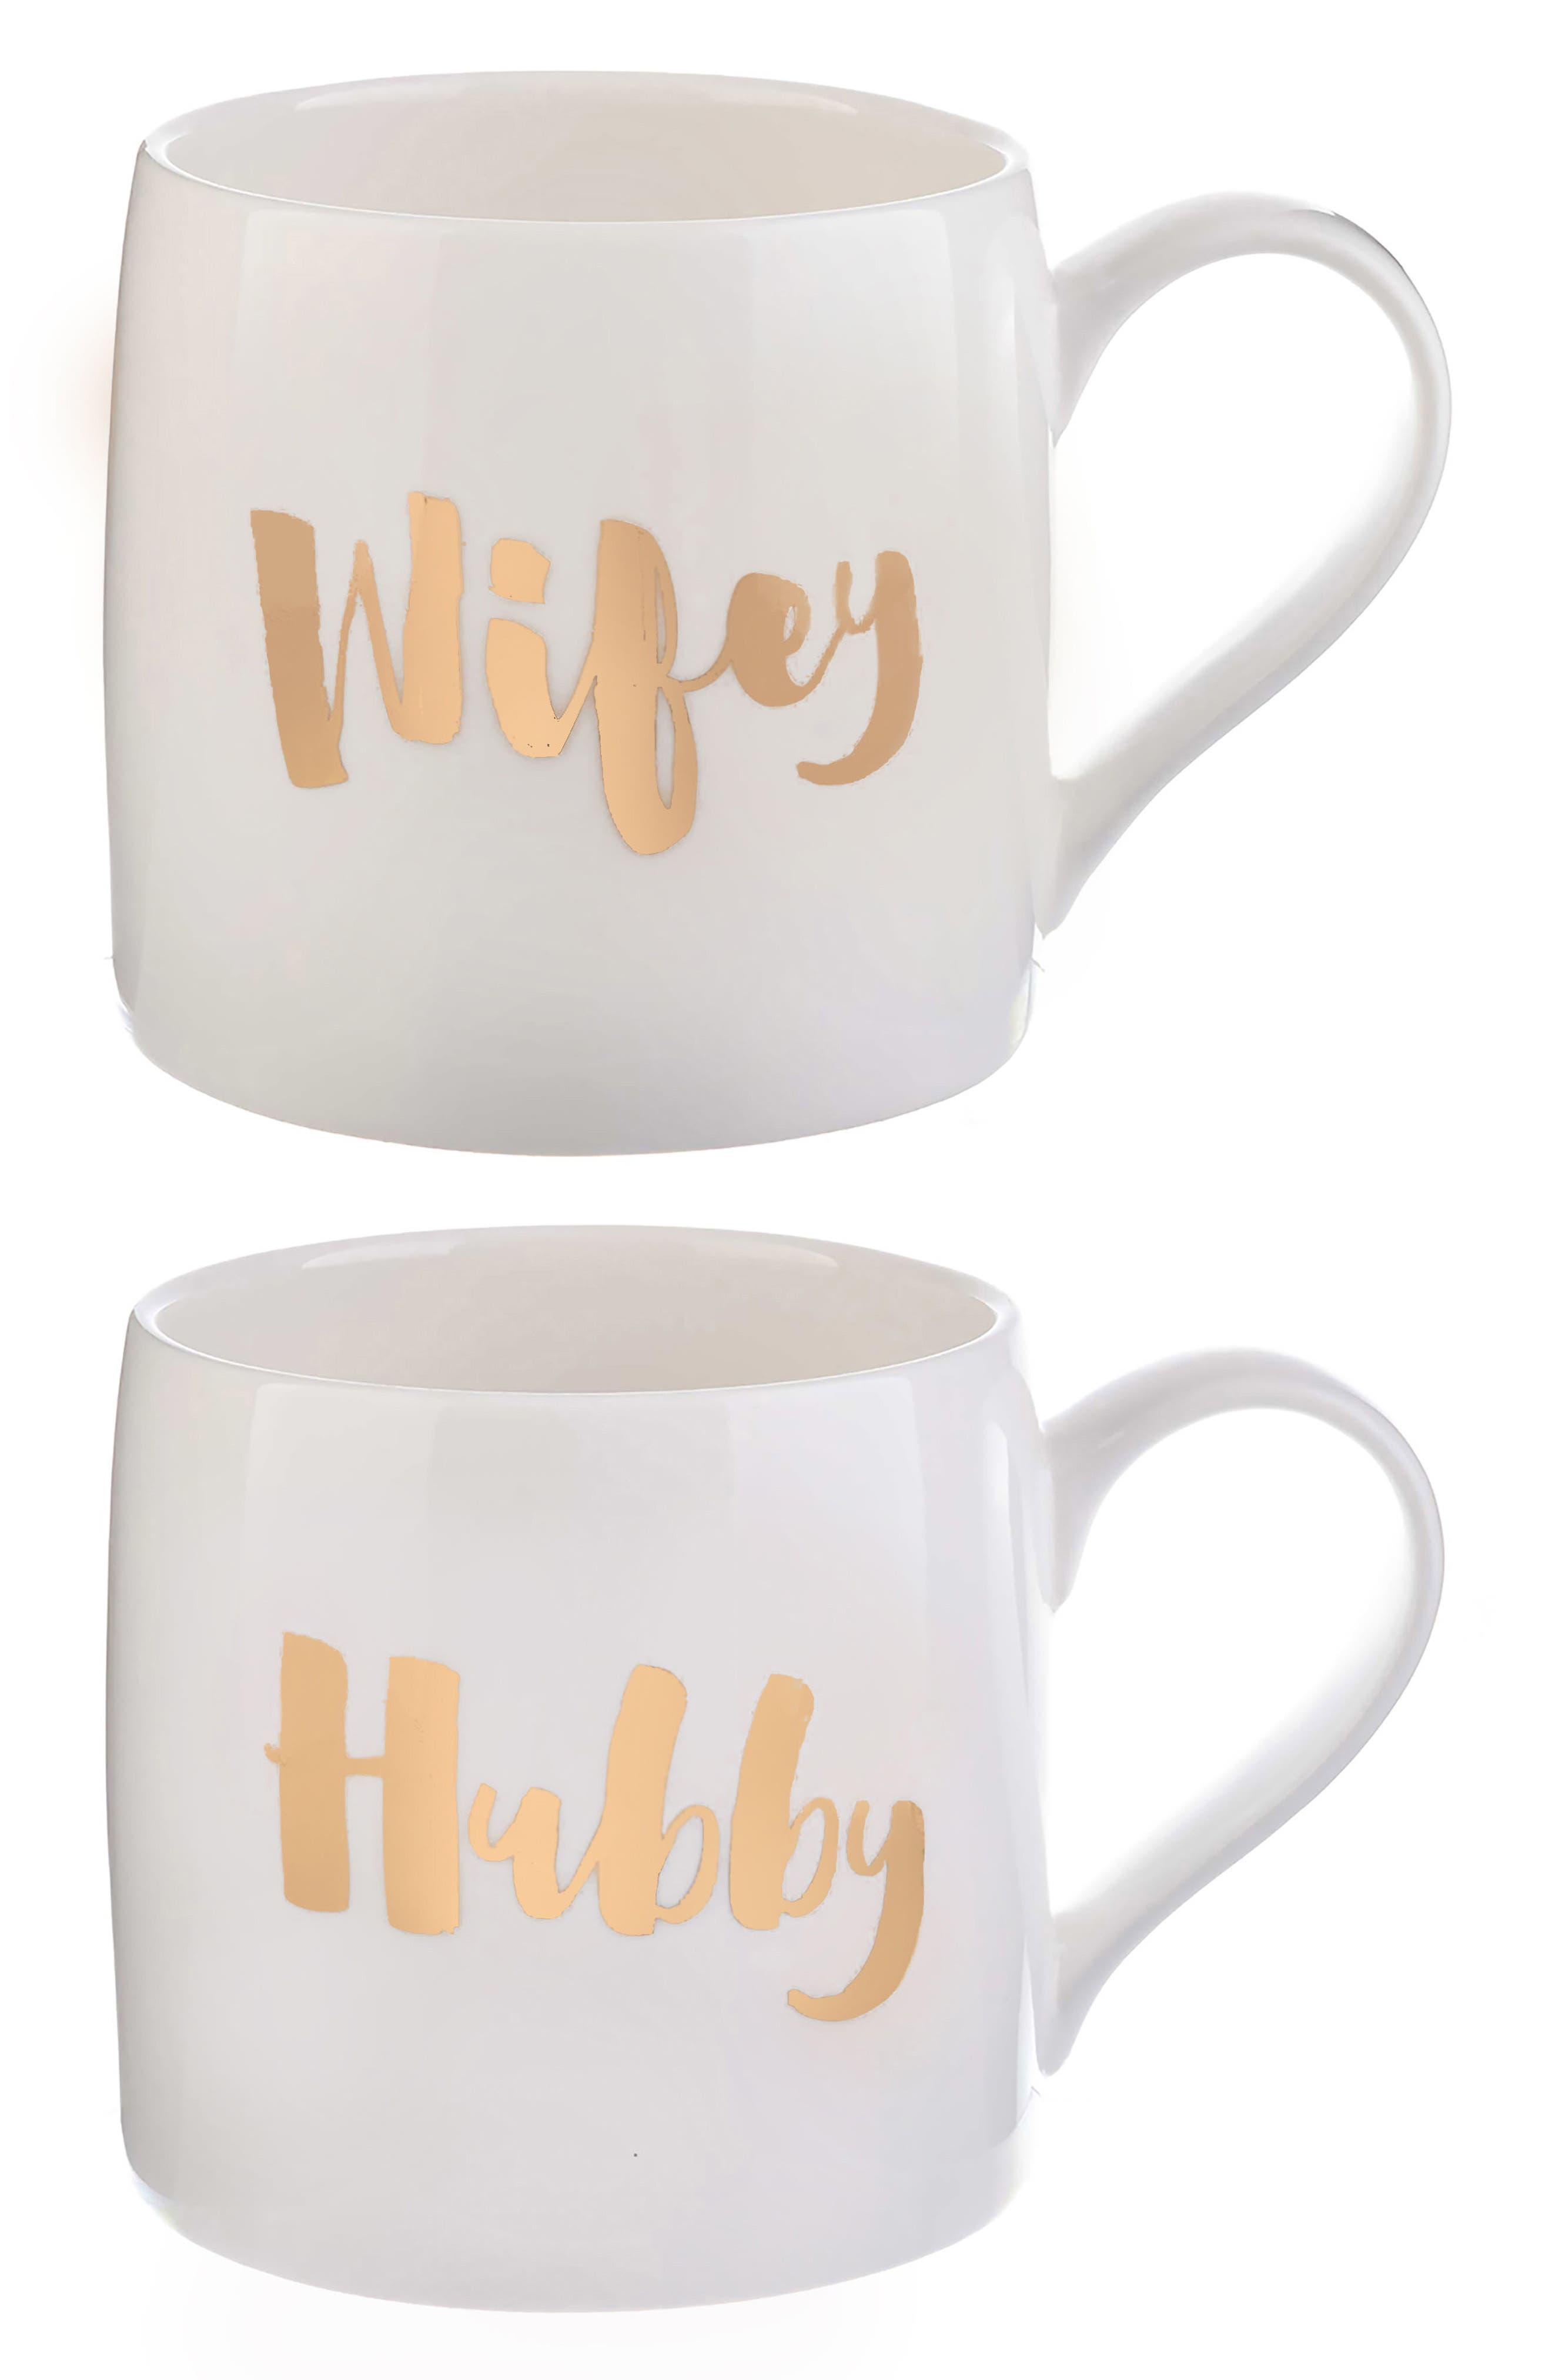 Main Image - Slant Collections Wifey/Hubby Set of 2 Coffee Mugs